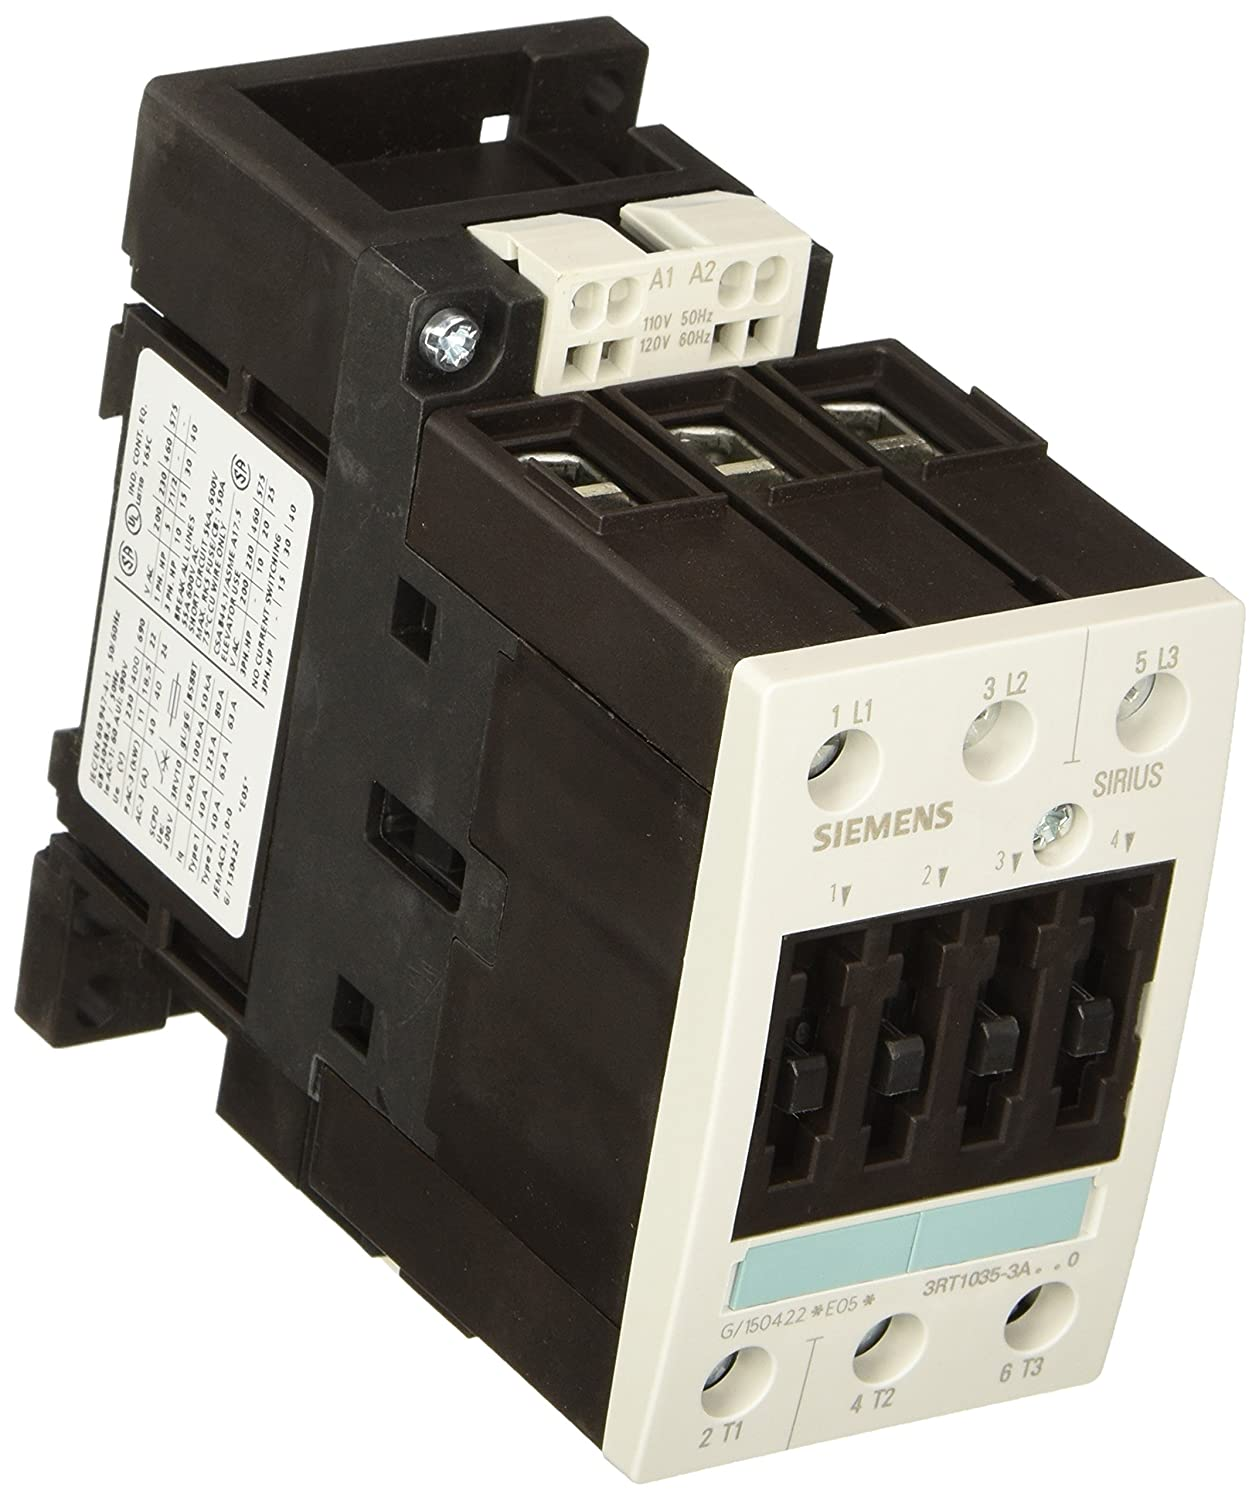 Siemens 3RT10 35-3AK60 Motor Contactor 3 Poles Spring Loaded Terminals S2 Frame Size 120V at 60Hz and 110V at 50Hz AC Coil Voltage 3RT10353AK60